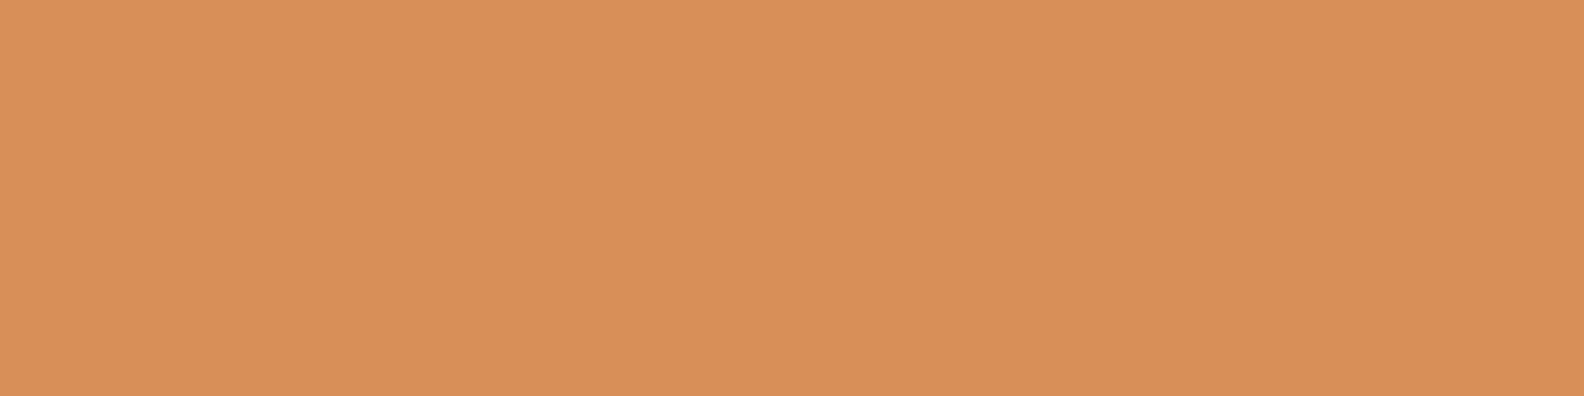 1584x396 Persian Orange Solid Color Background